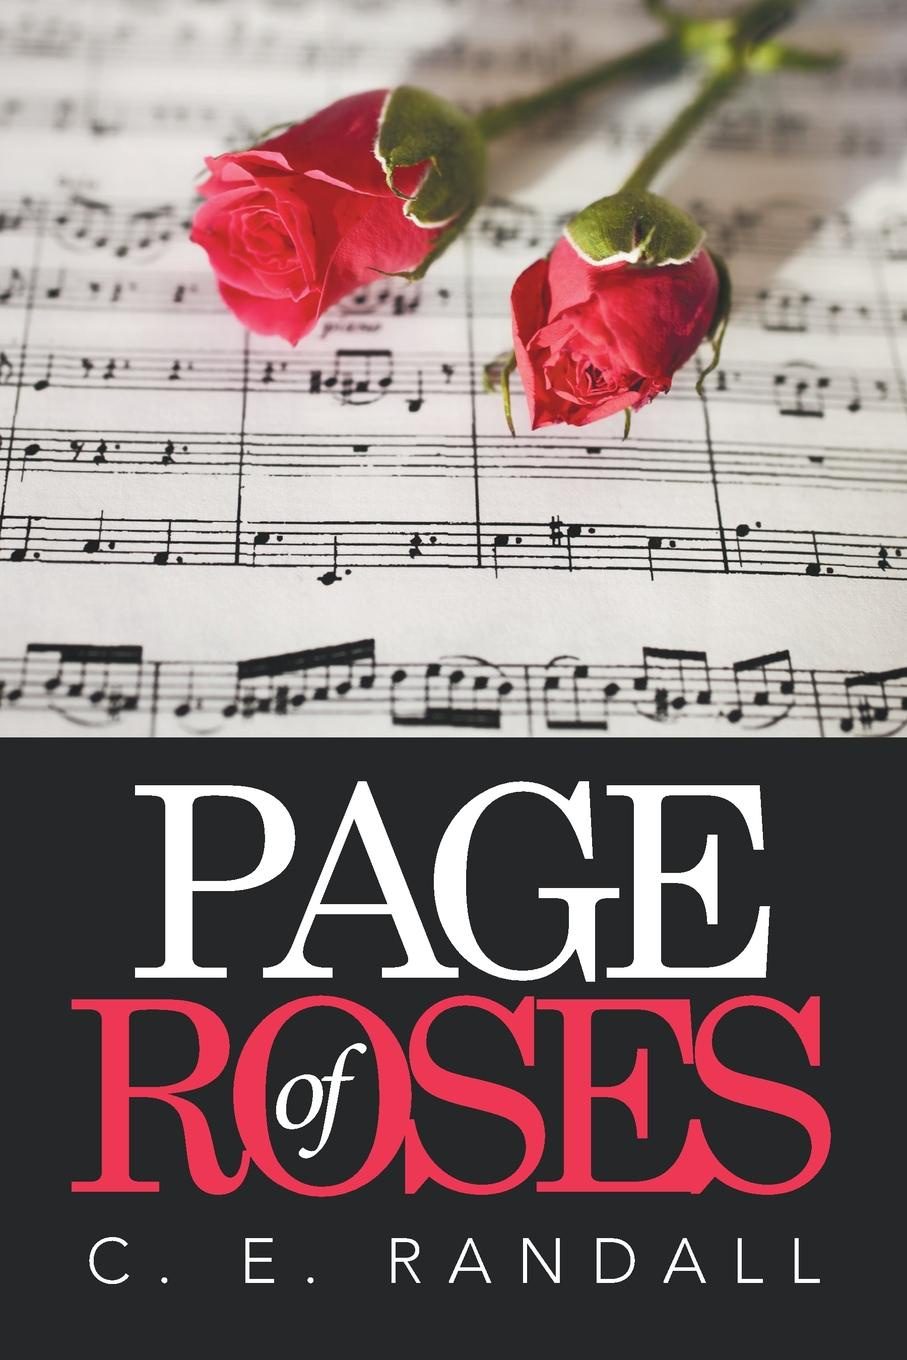 C. E. Randall Page of Roses sitemap html page 10 page 3 page 5